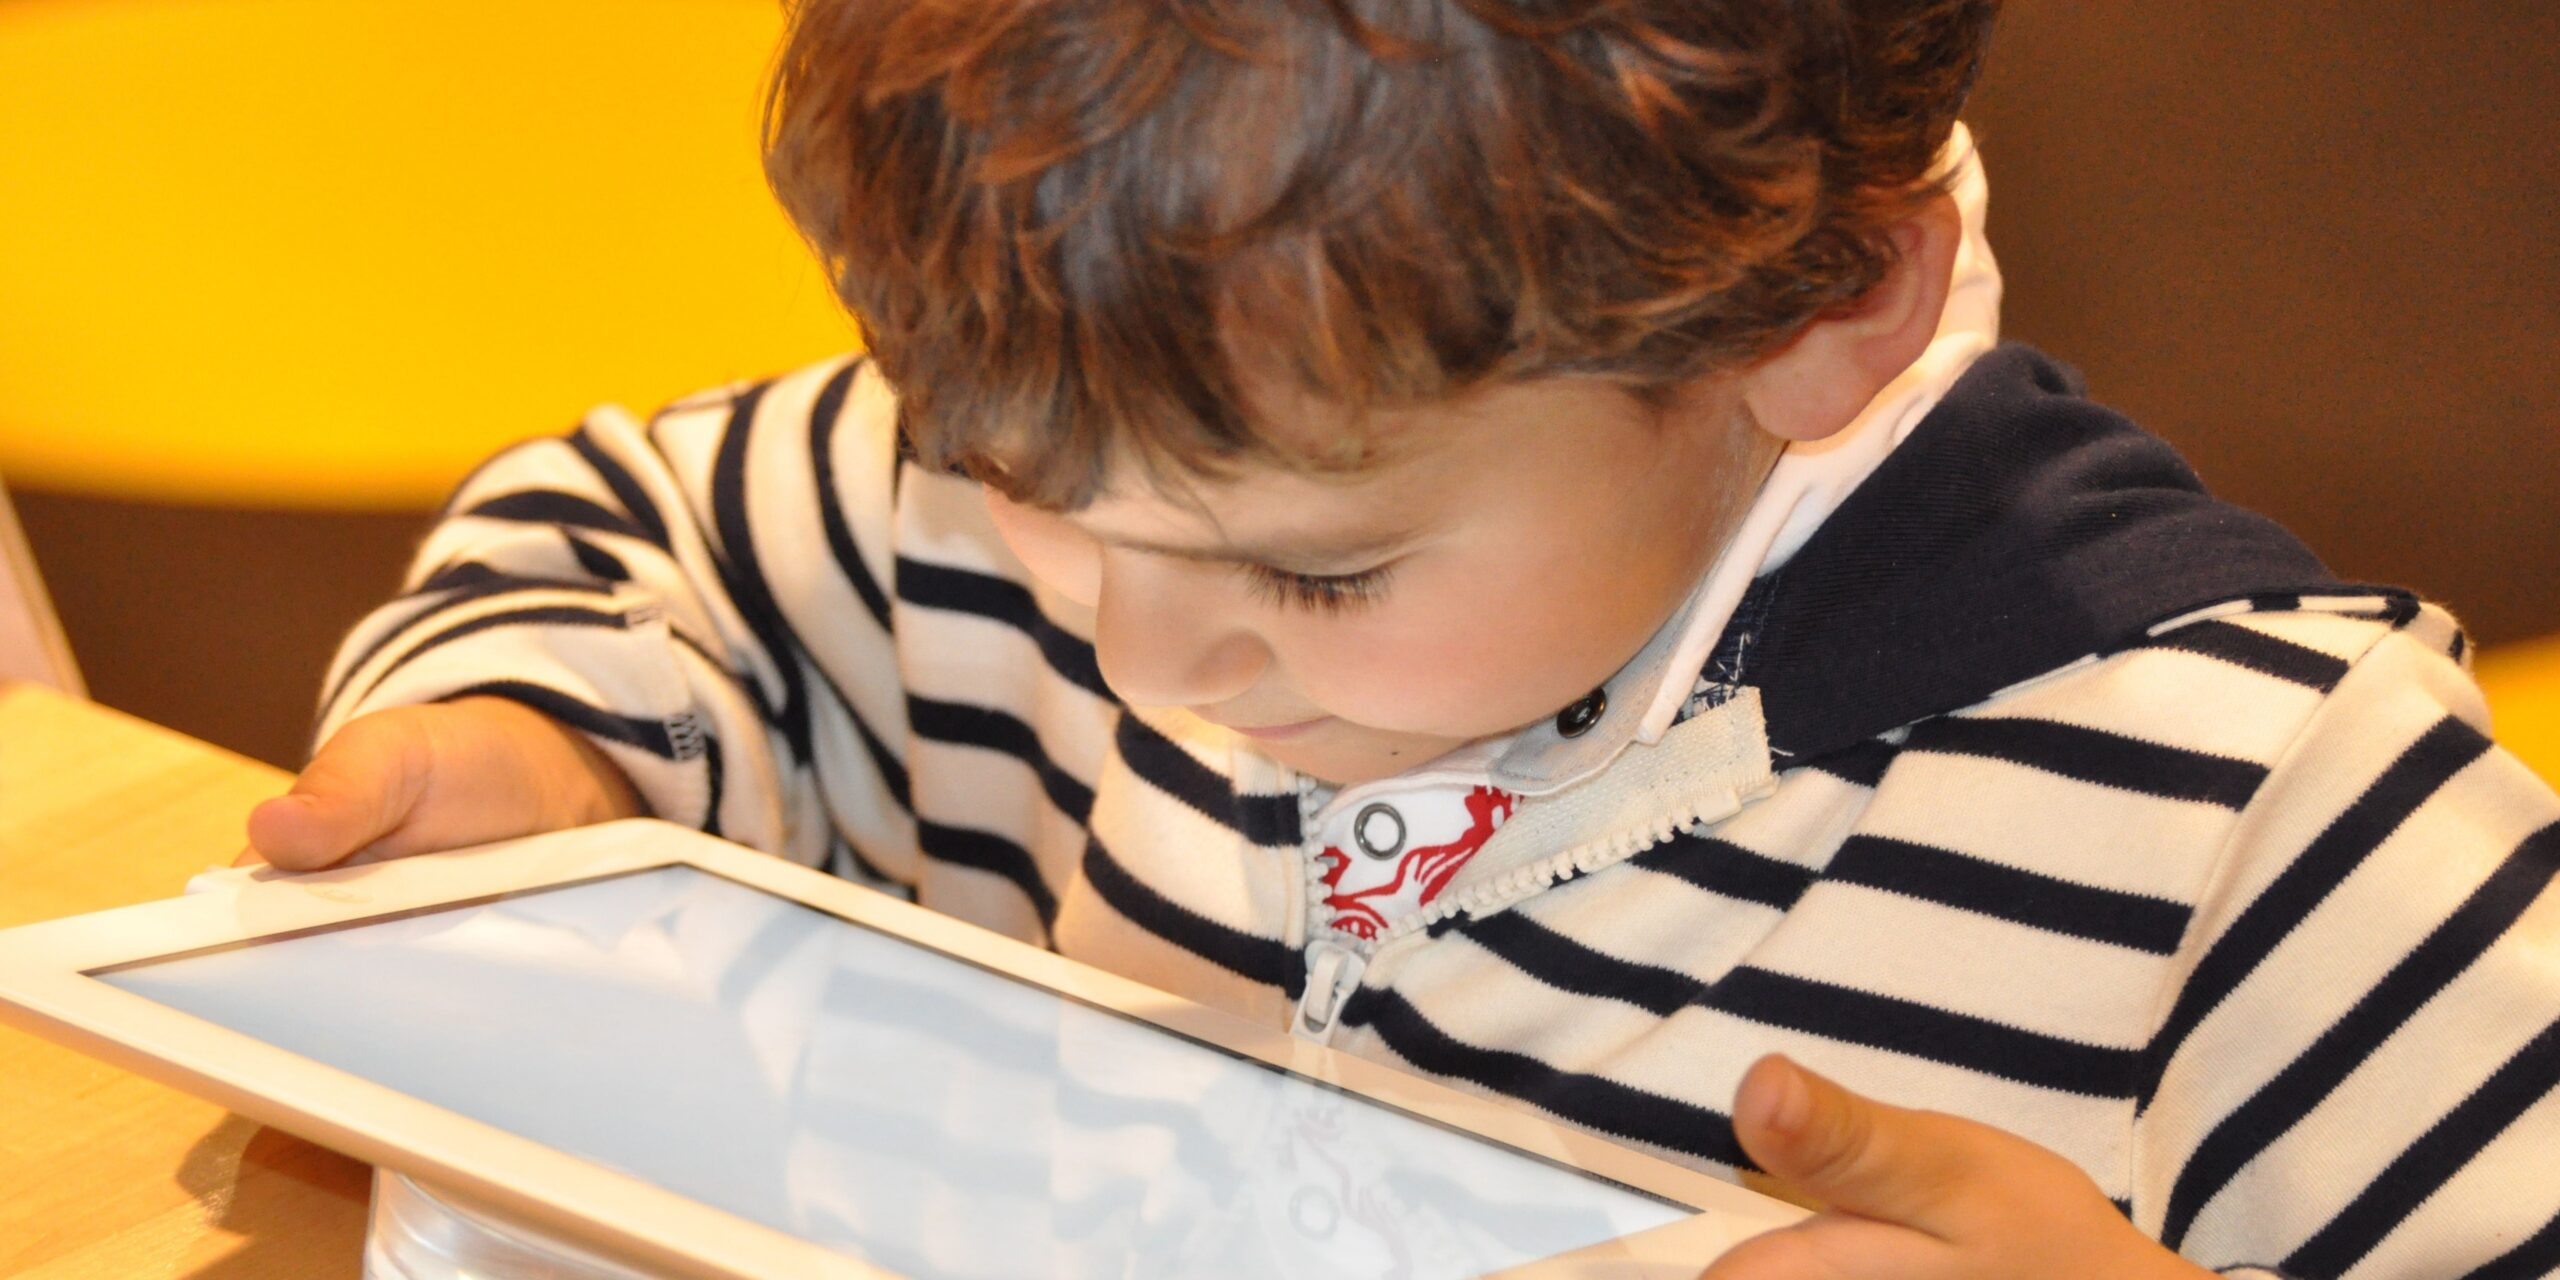 Virtual Learning: 10 Smart Tips To Ensure Your Child's Success